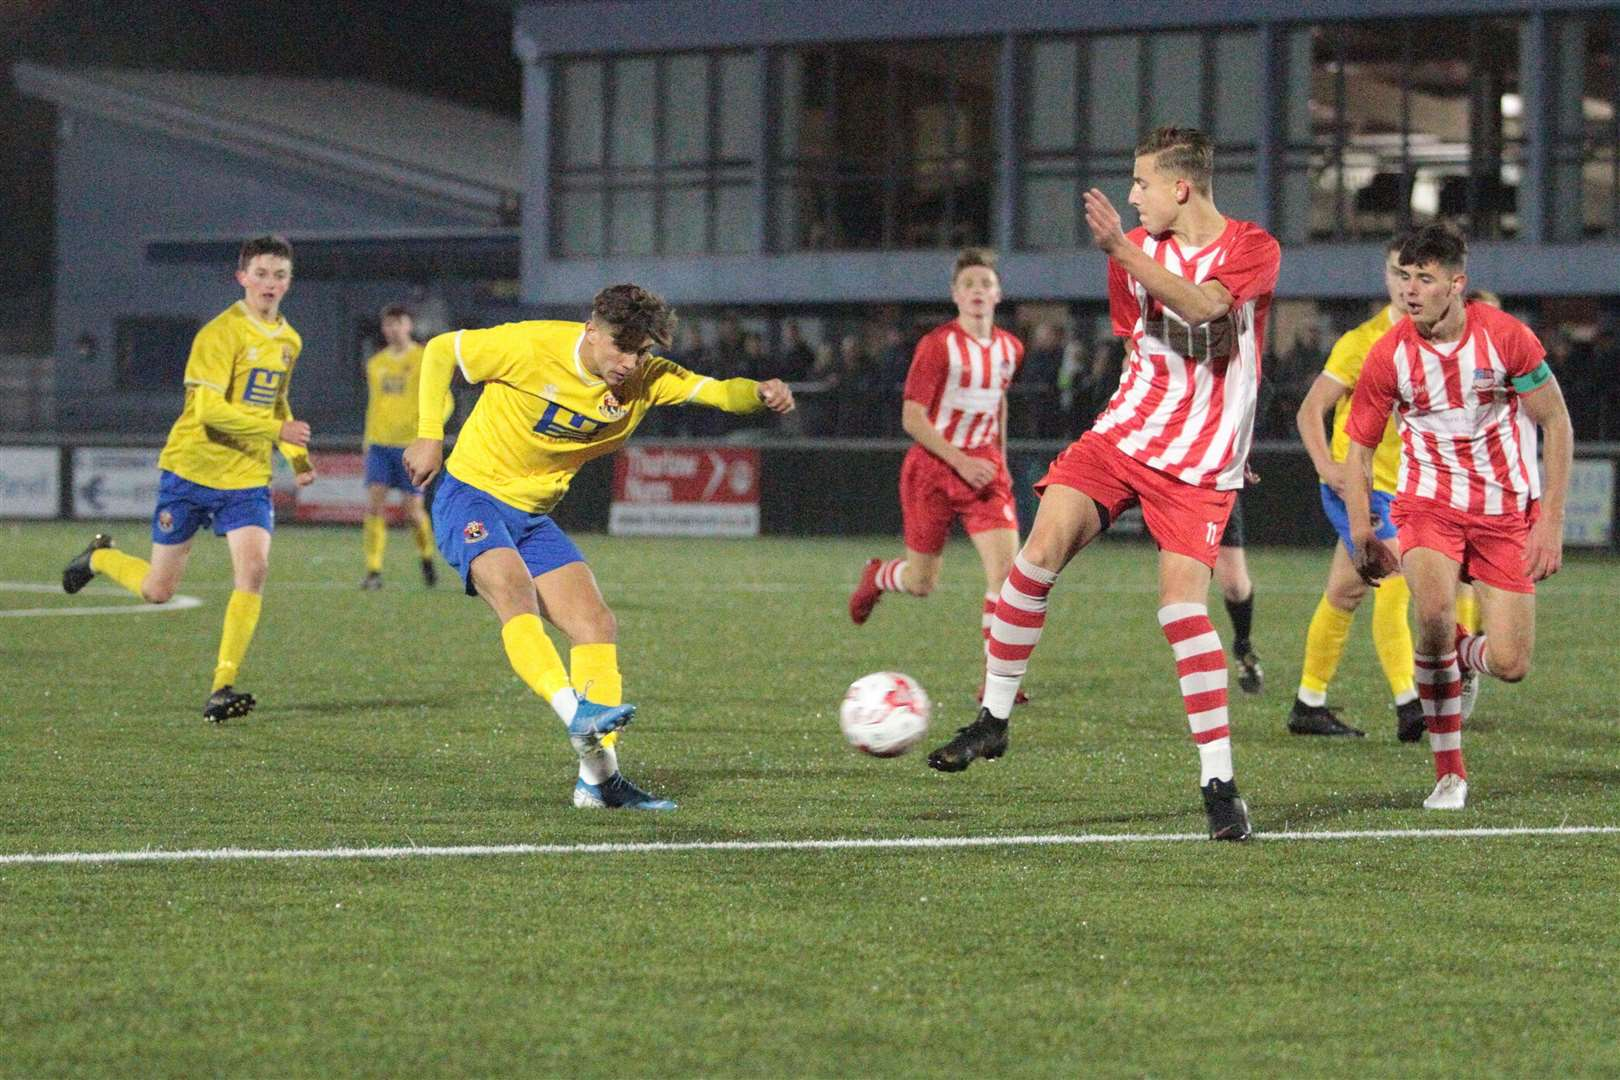 AFC Sudbury U18s v Bowers & Pitsea - Shane Temple fires in a shot in the FA Youth Cup Picture: Clive Pearson (20479685)